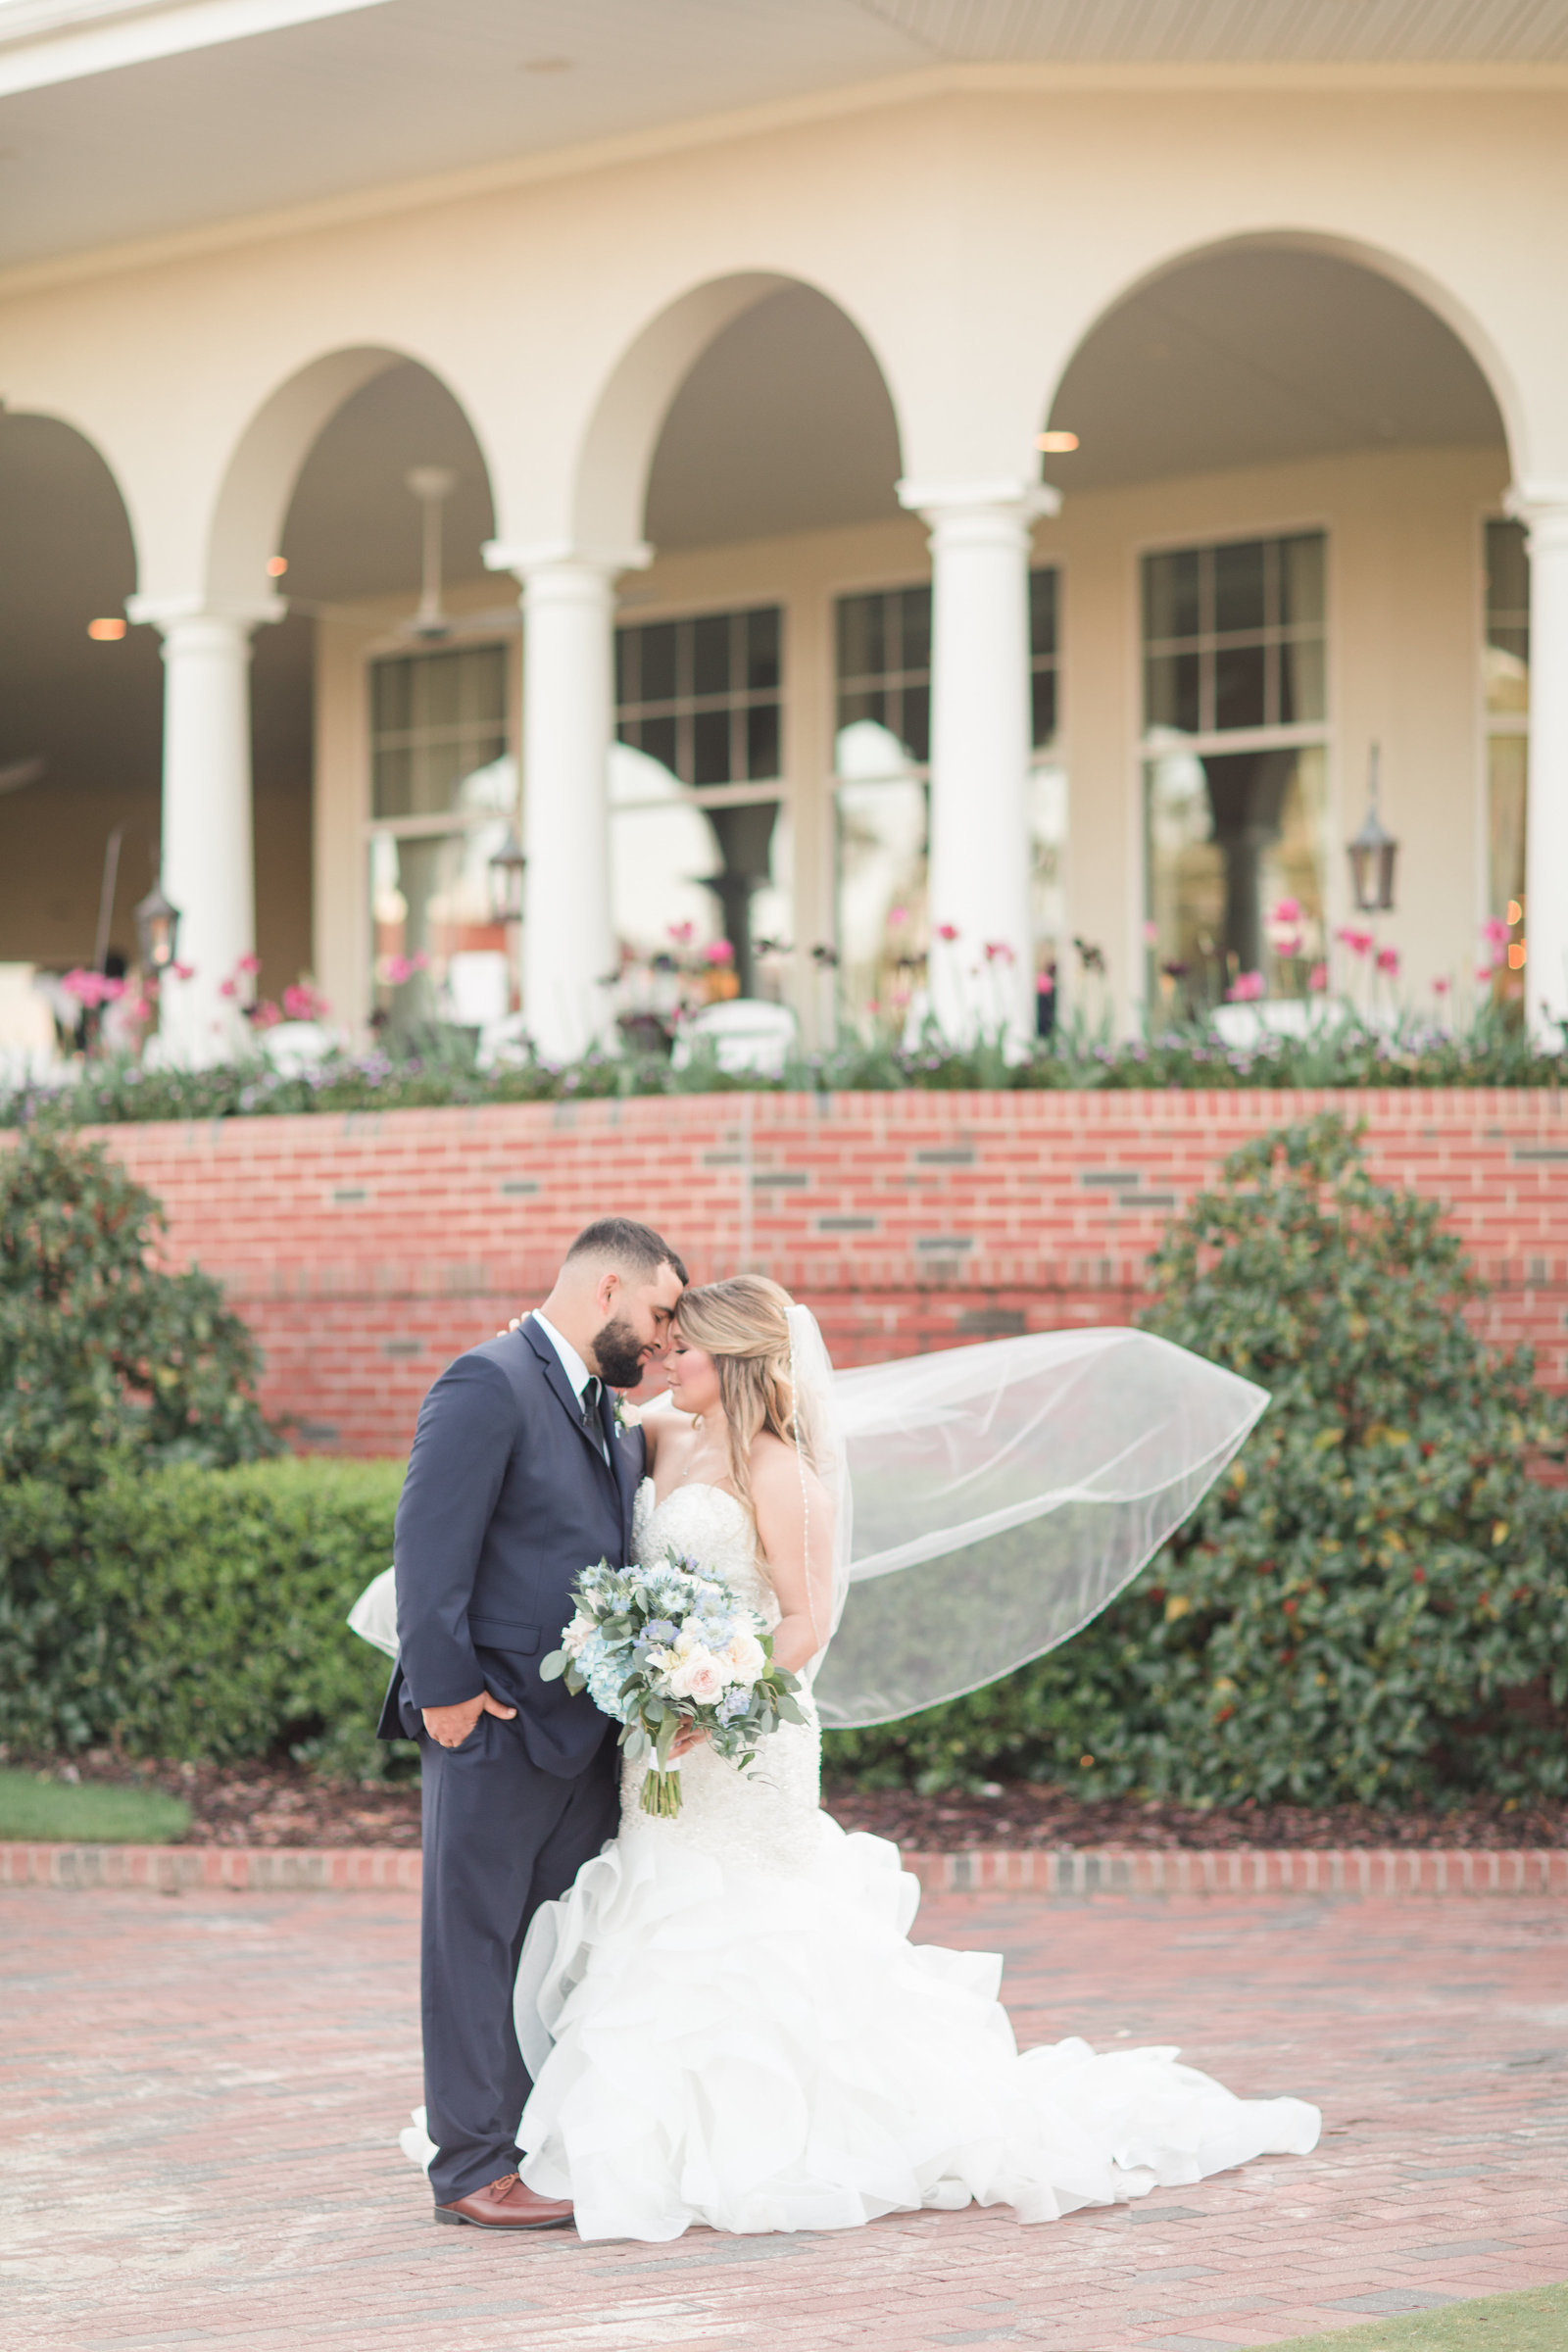 Jennifer_B_Photography-Pinehurst_Club-Pinehurst_NC-Wedding_Day-Caleb___Miranda-JB_Favs-2019-0185